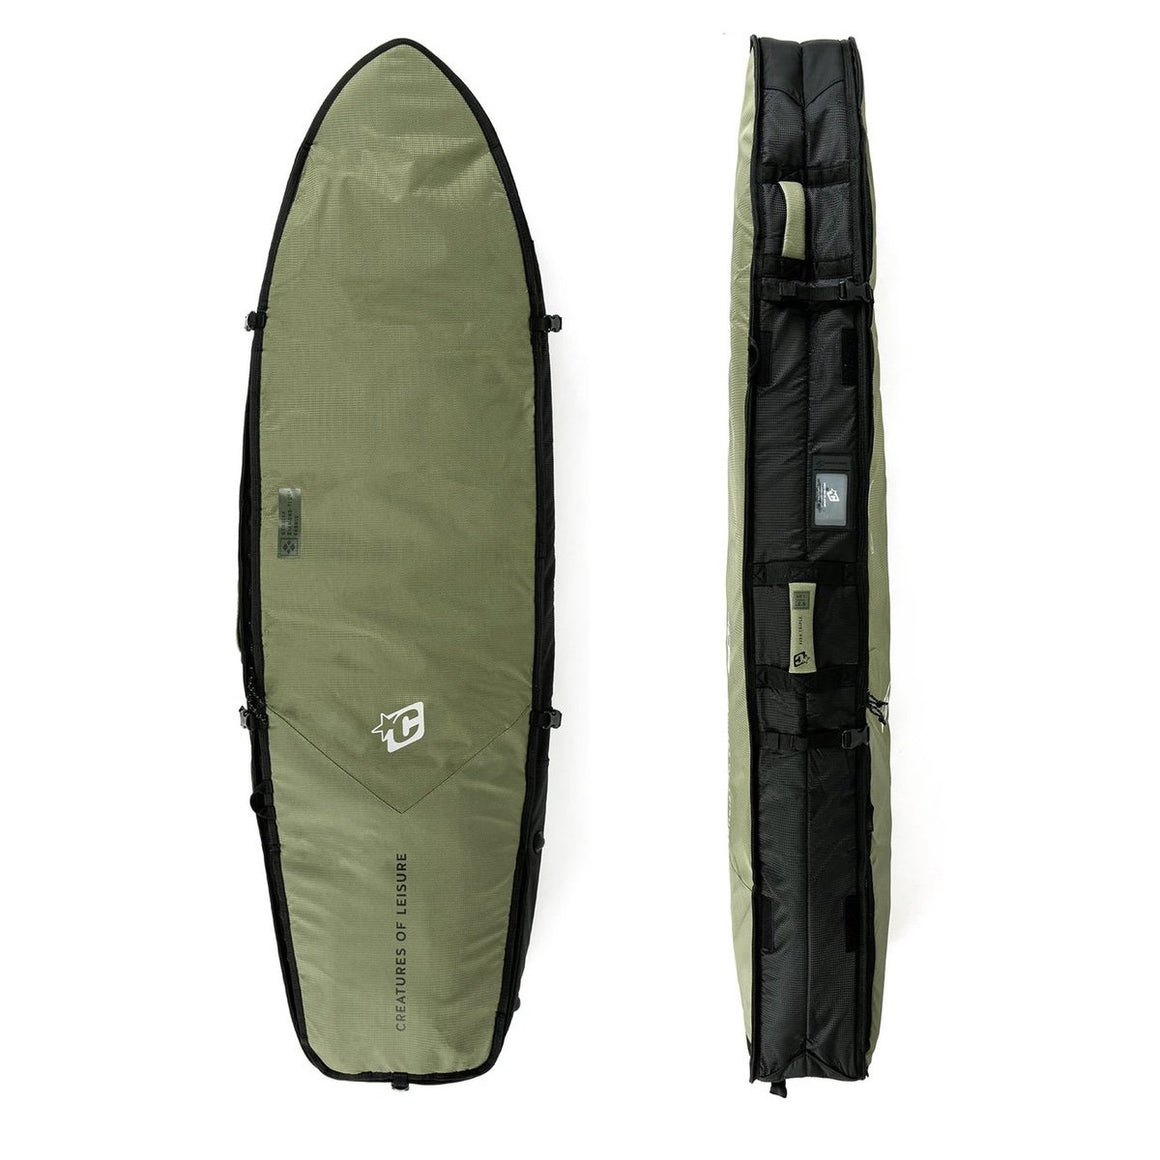 "Creature of Leisure board bag - Fish Triple DT2.0 6'3"" : Military Black"